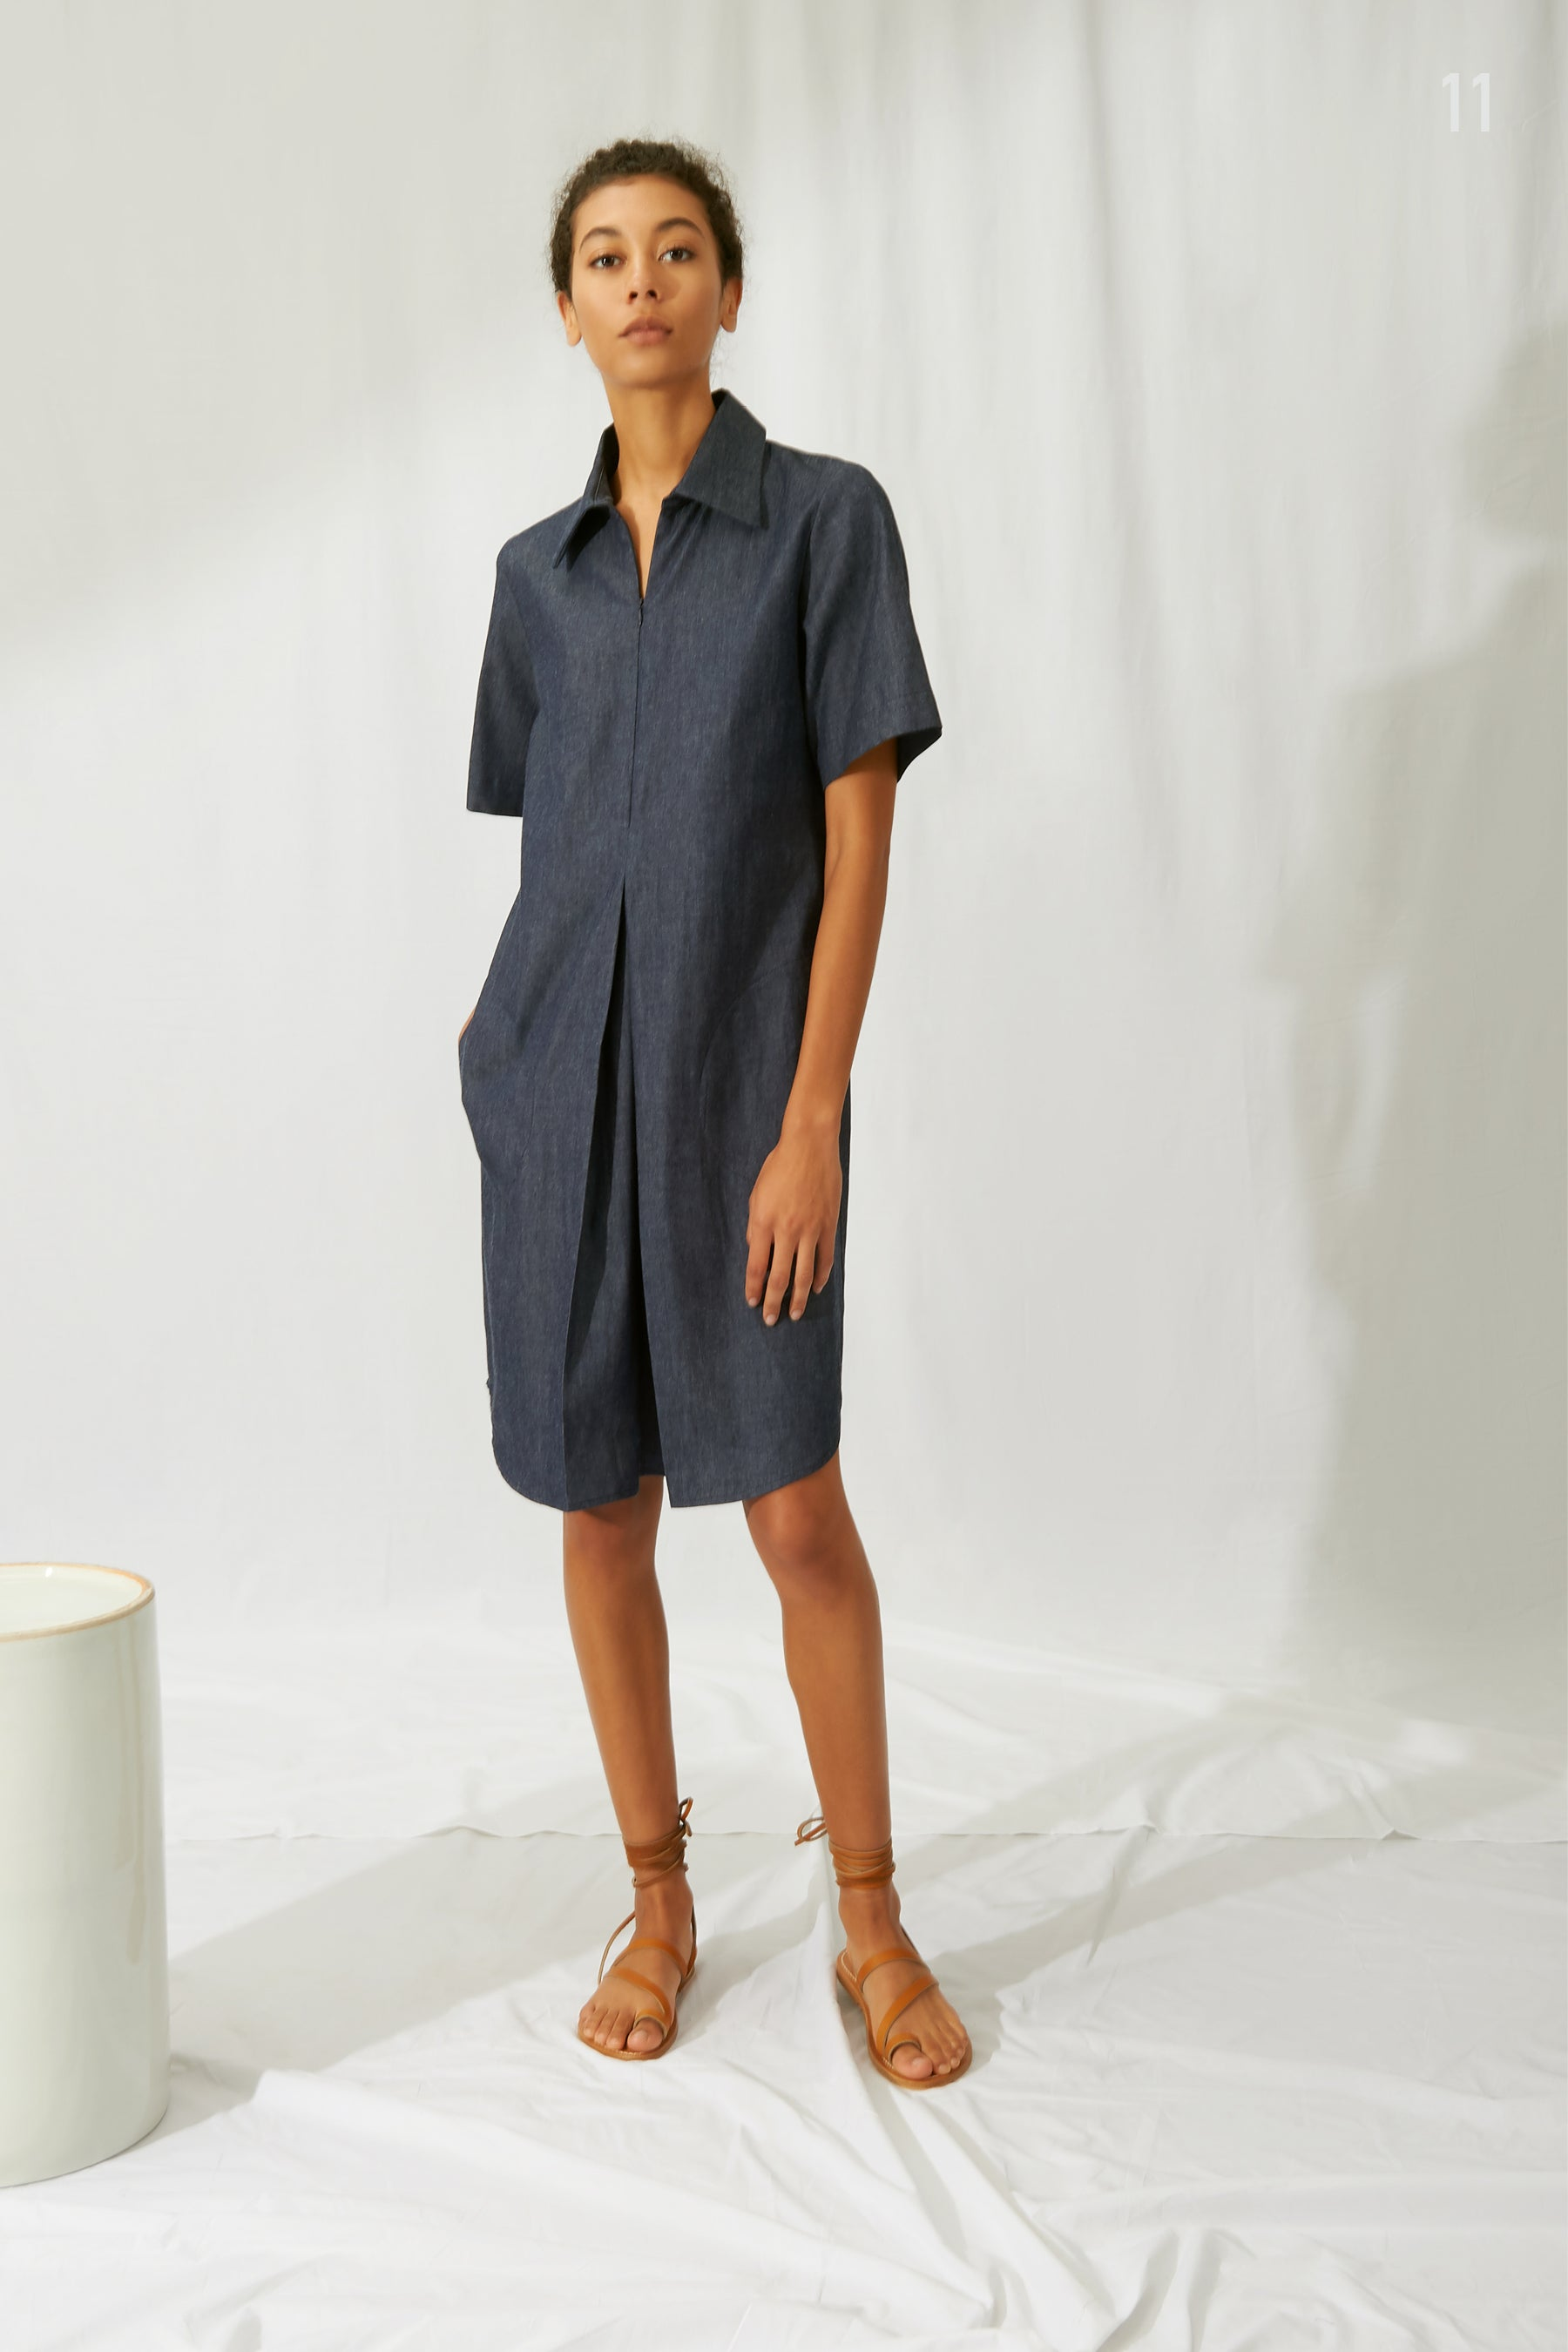 Kal Rieman Spring 2020 Lookbook Look 11